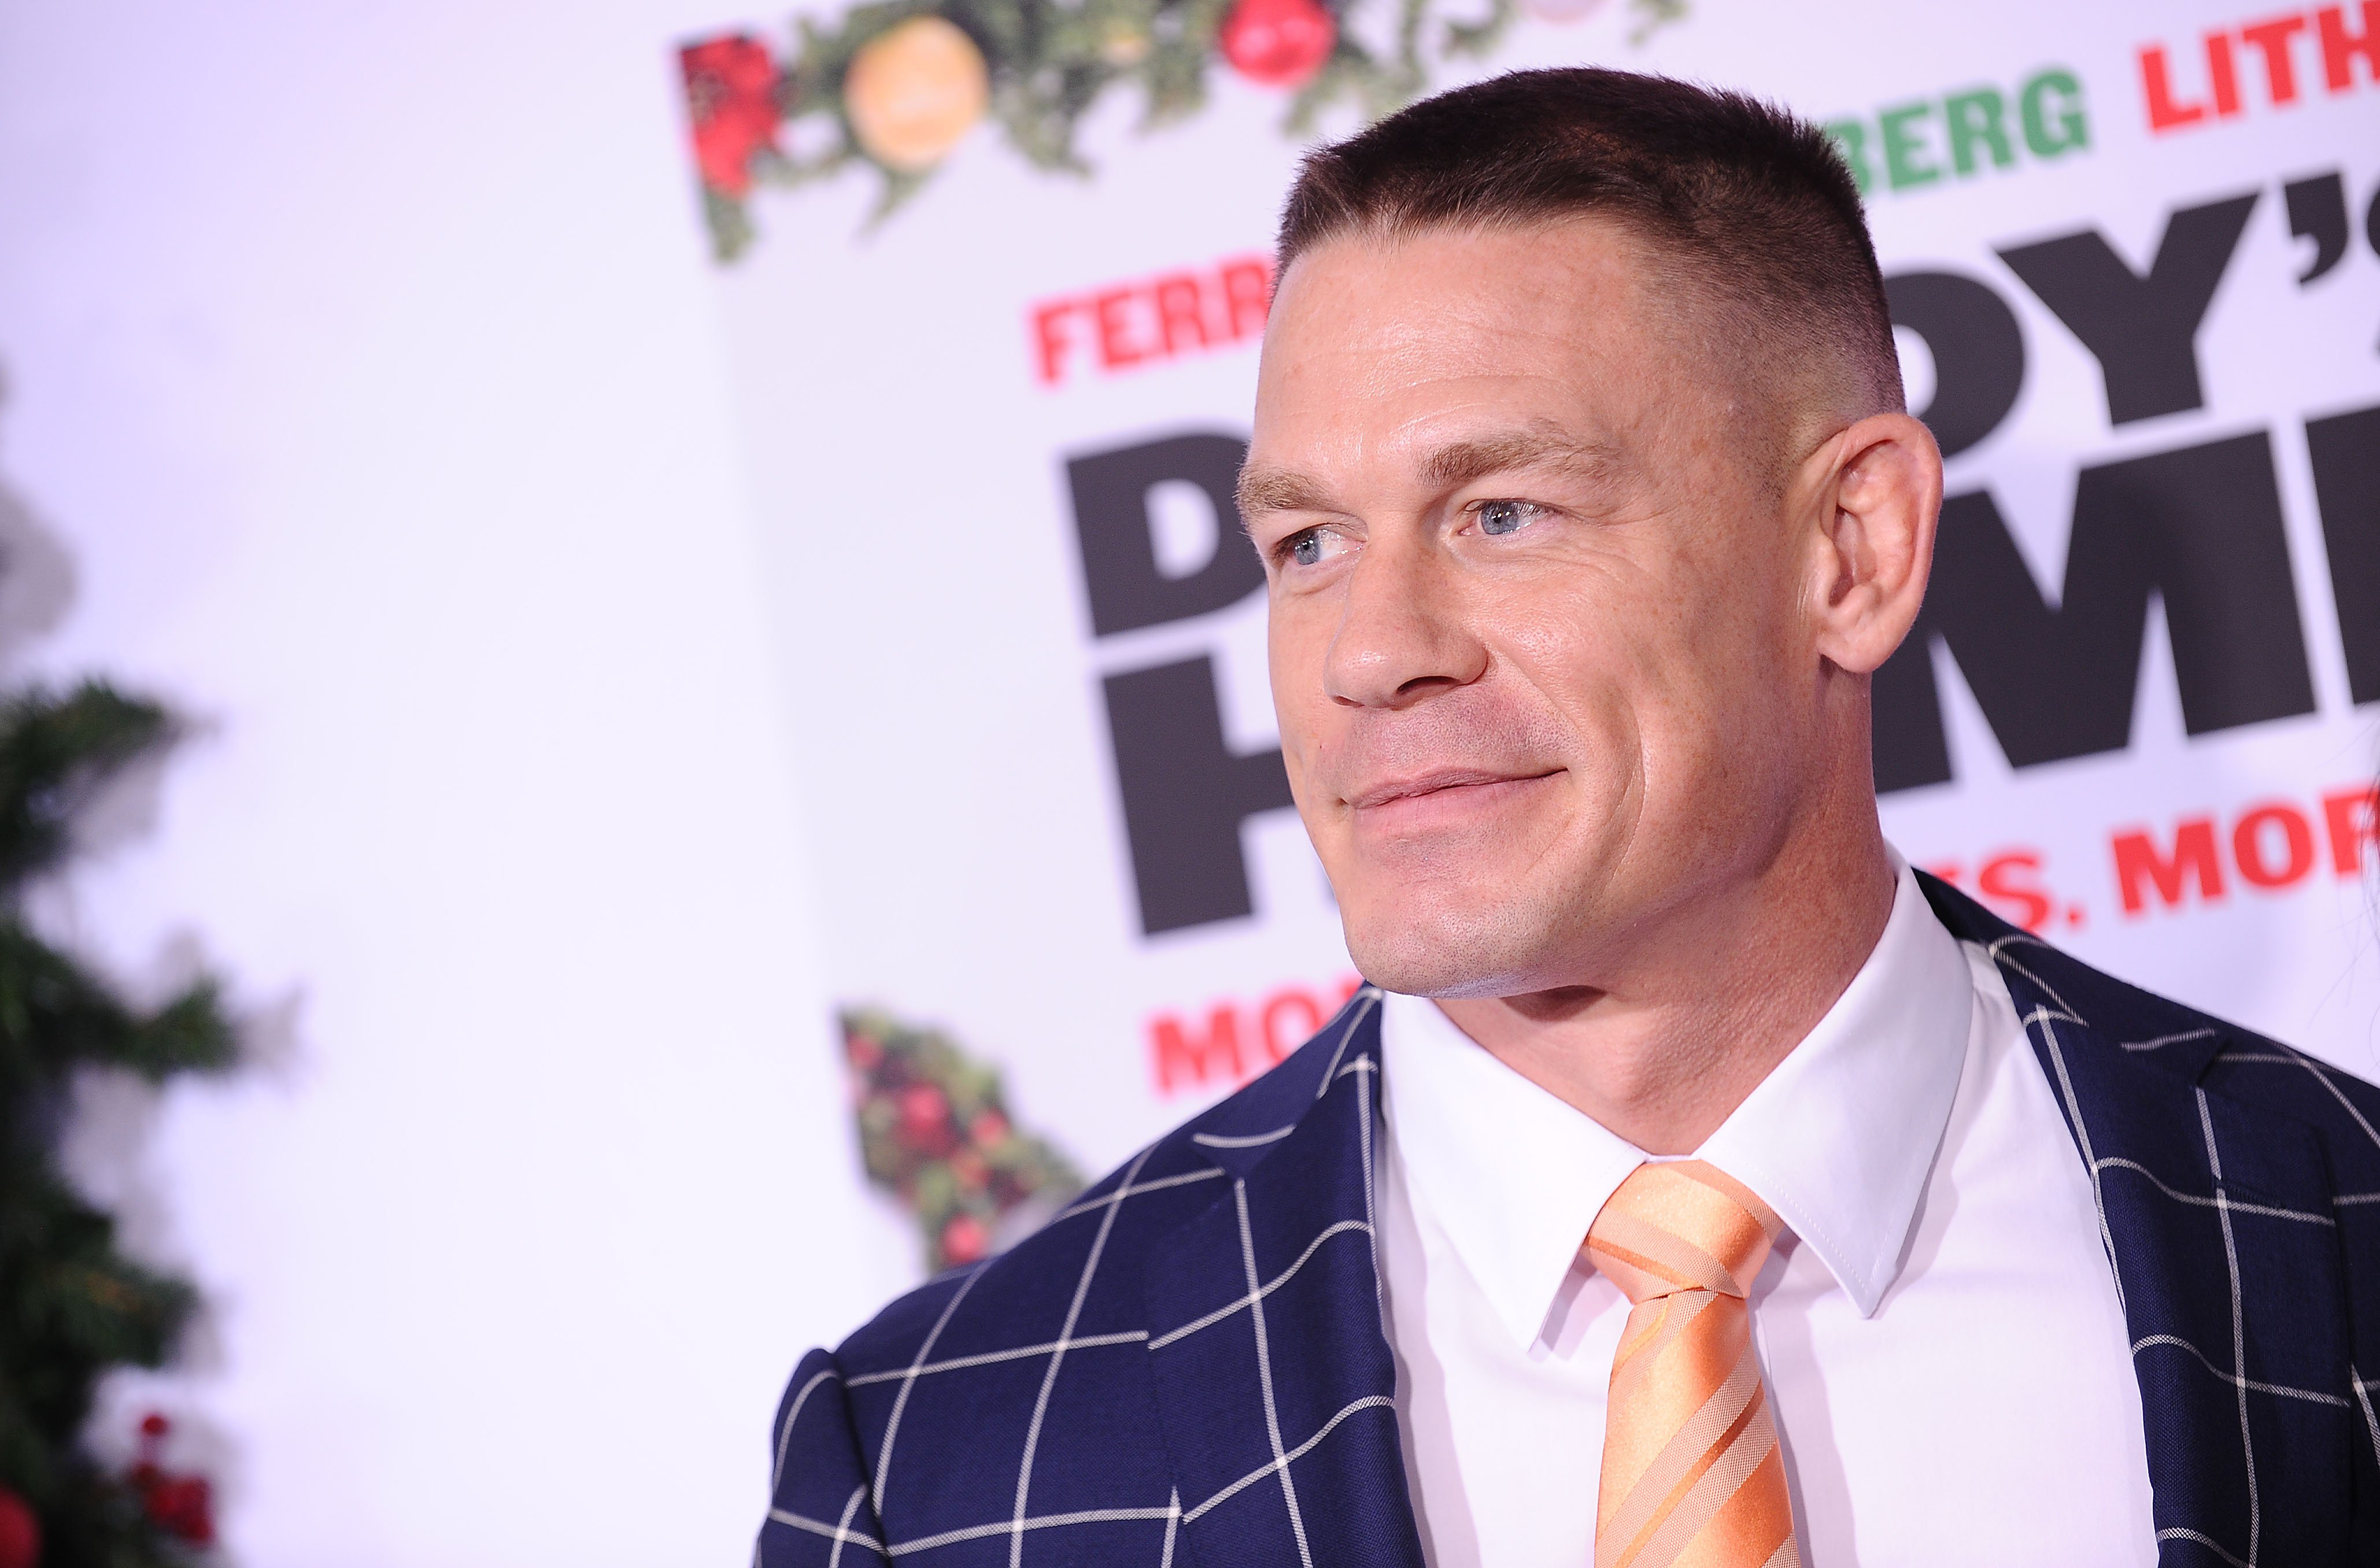 Tmz Is Reporting John Cena Is Fighting Back Against Ford And Their Lawsuit Over The Sale Of His Rare Ford Gt Saying The Car Company Screwed Up The